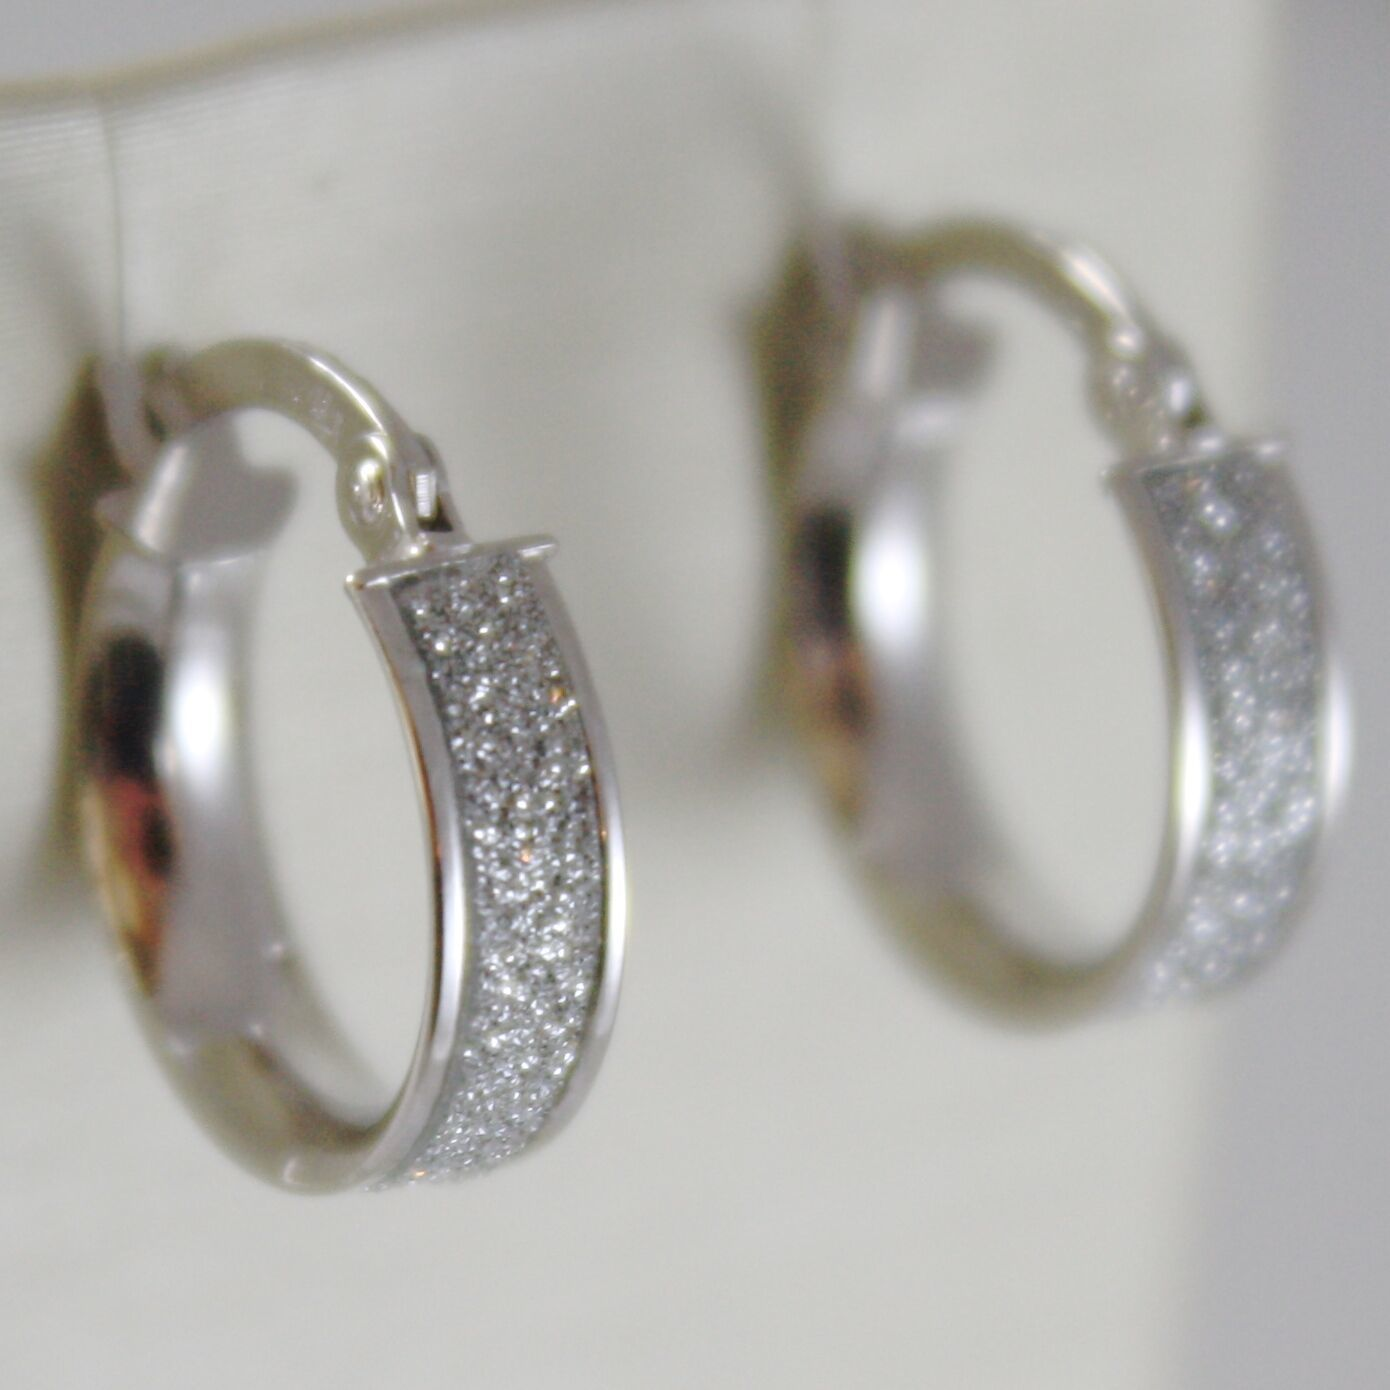 White Gold Earrings 750 18k a circle, diameter 1.4 CM, Glitter Effect